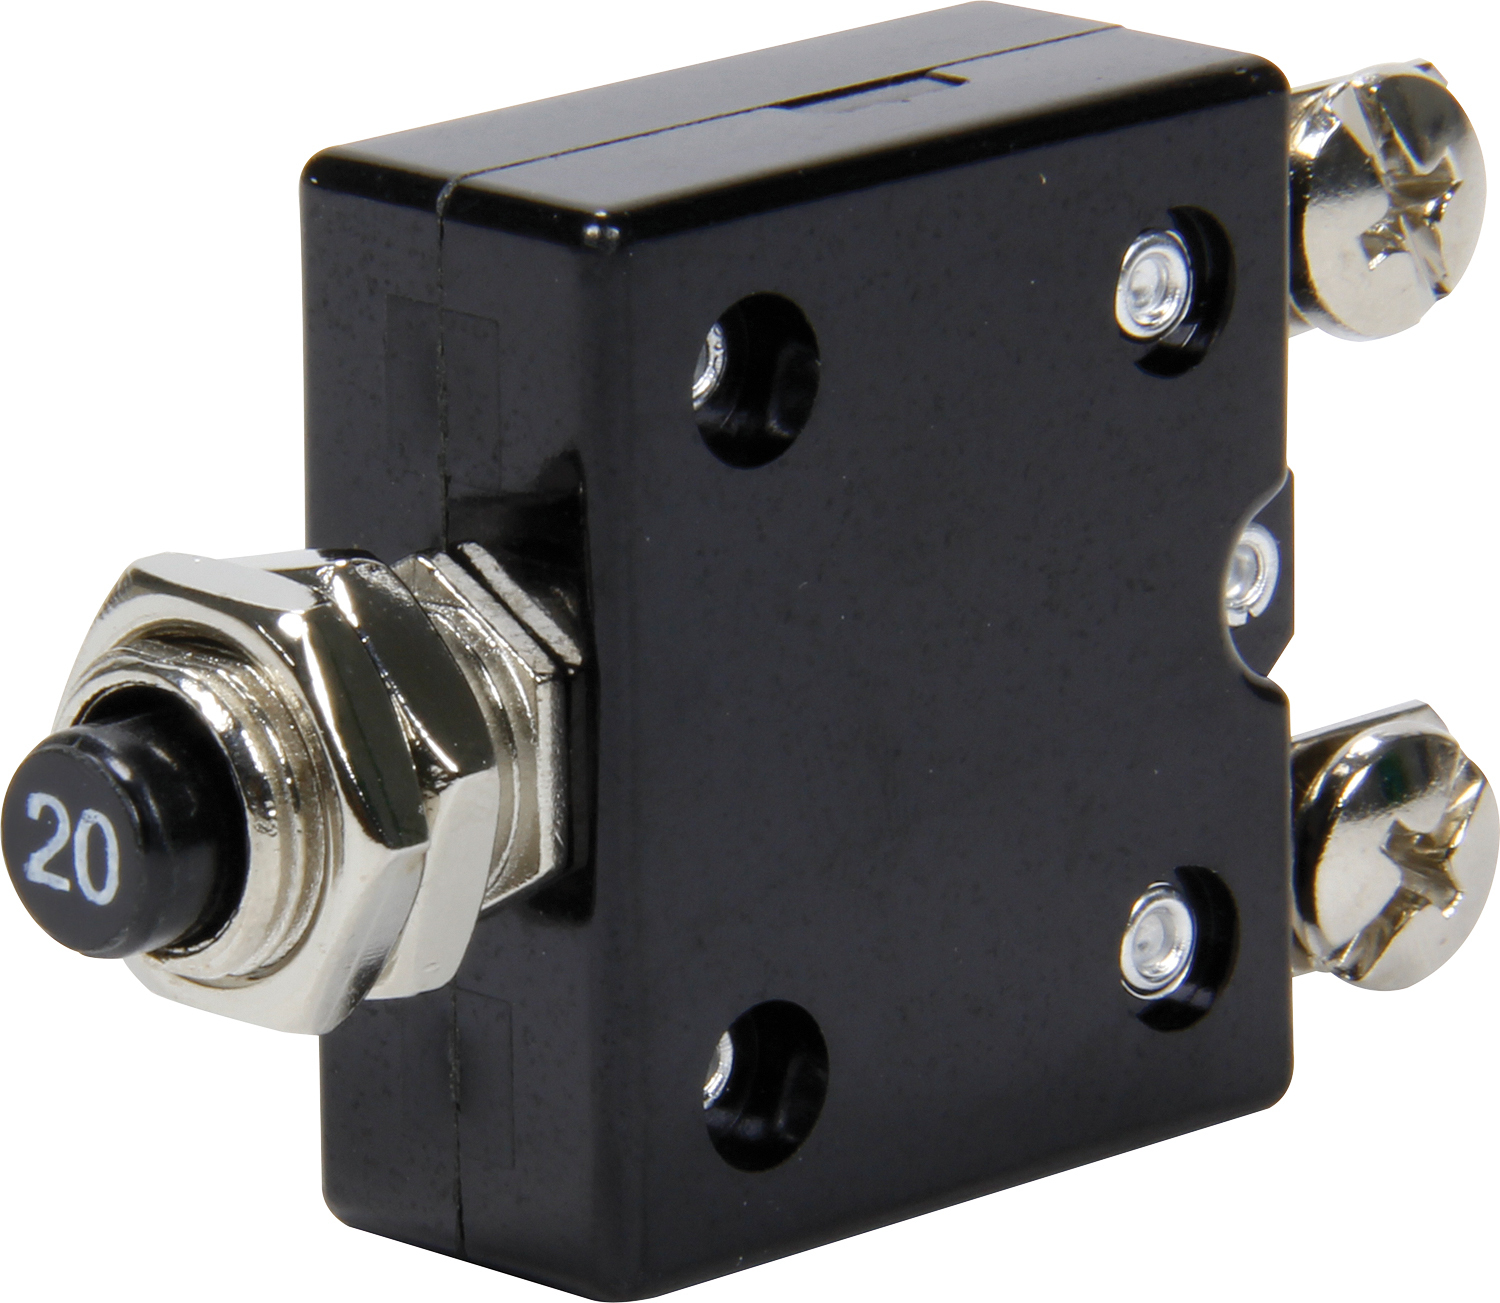 Quickcar Racing Products 20 Amp Resettable Circuit Breaker